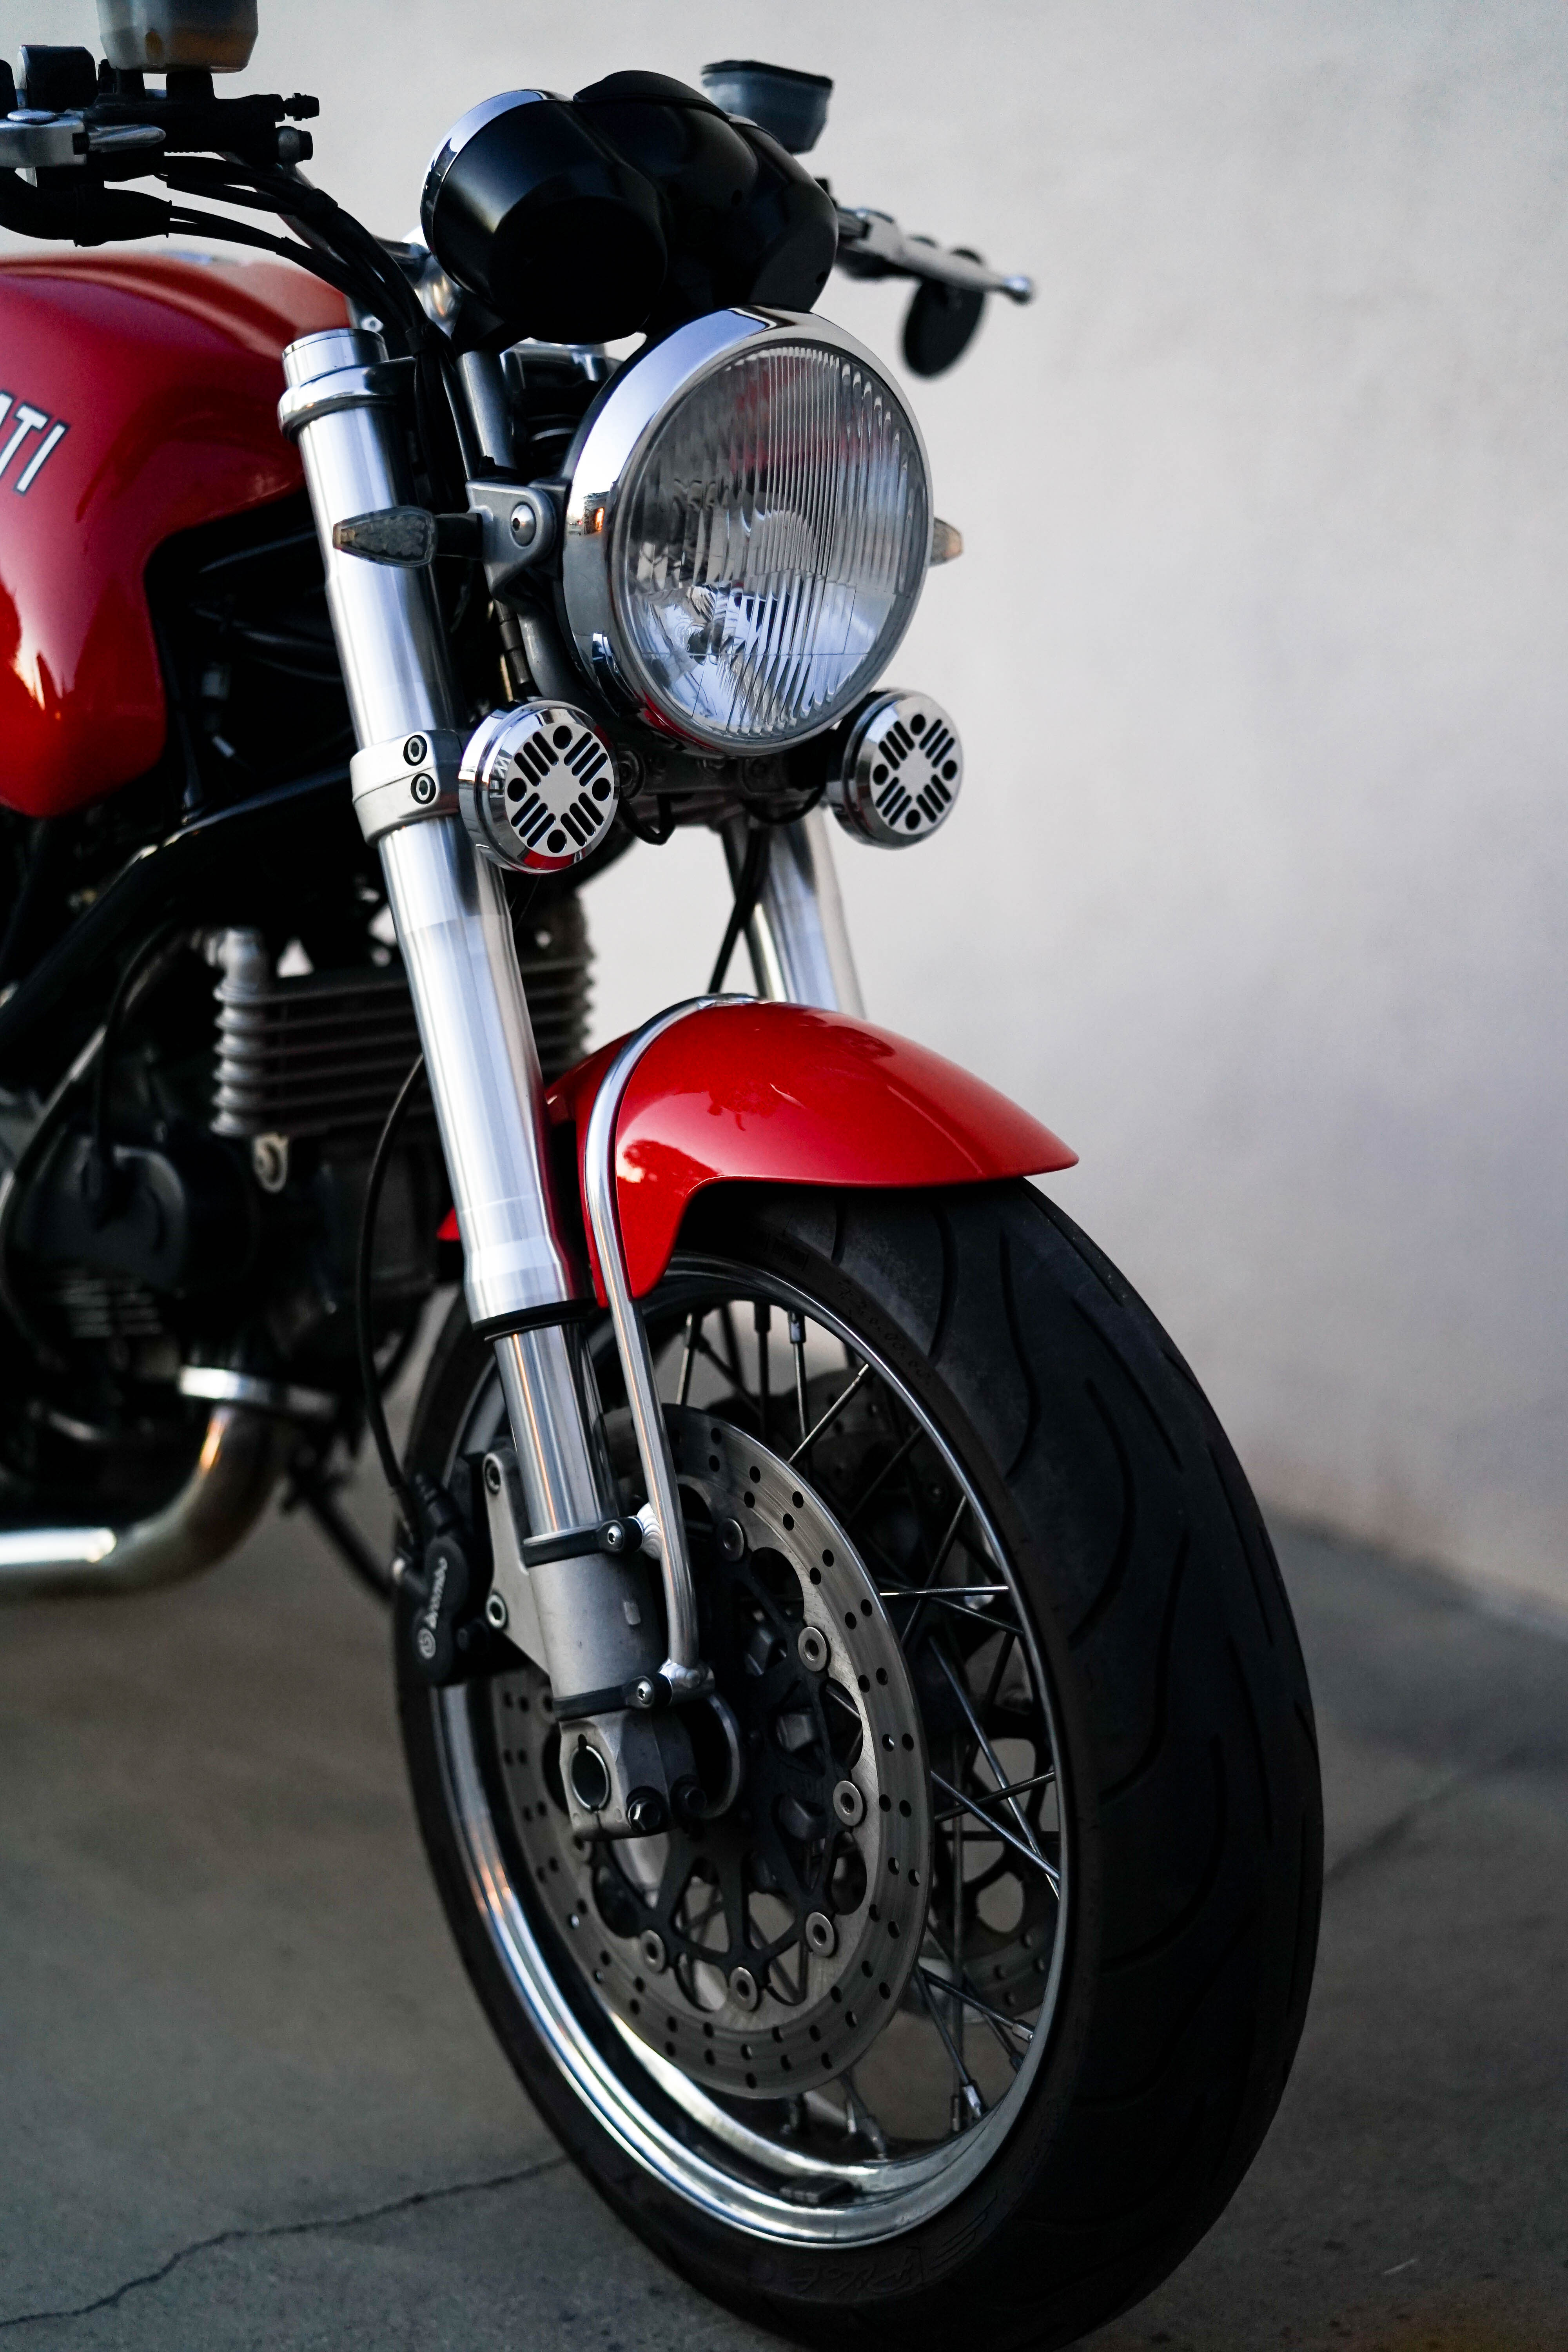 Ducati Gt1000 front end